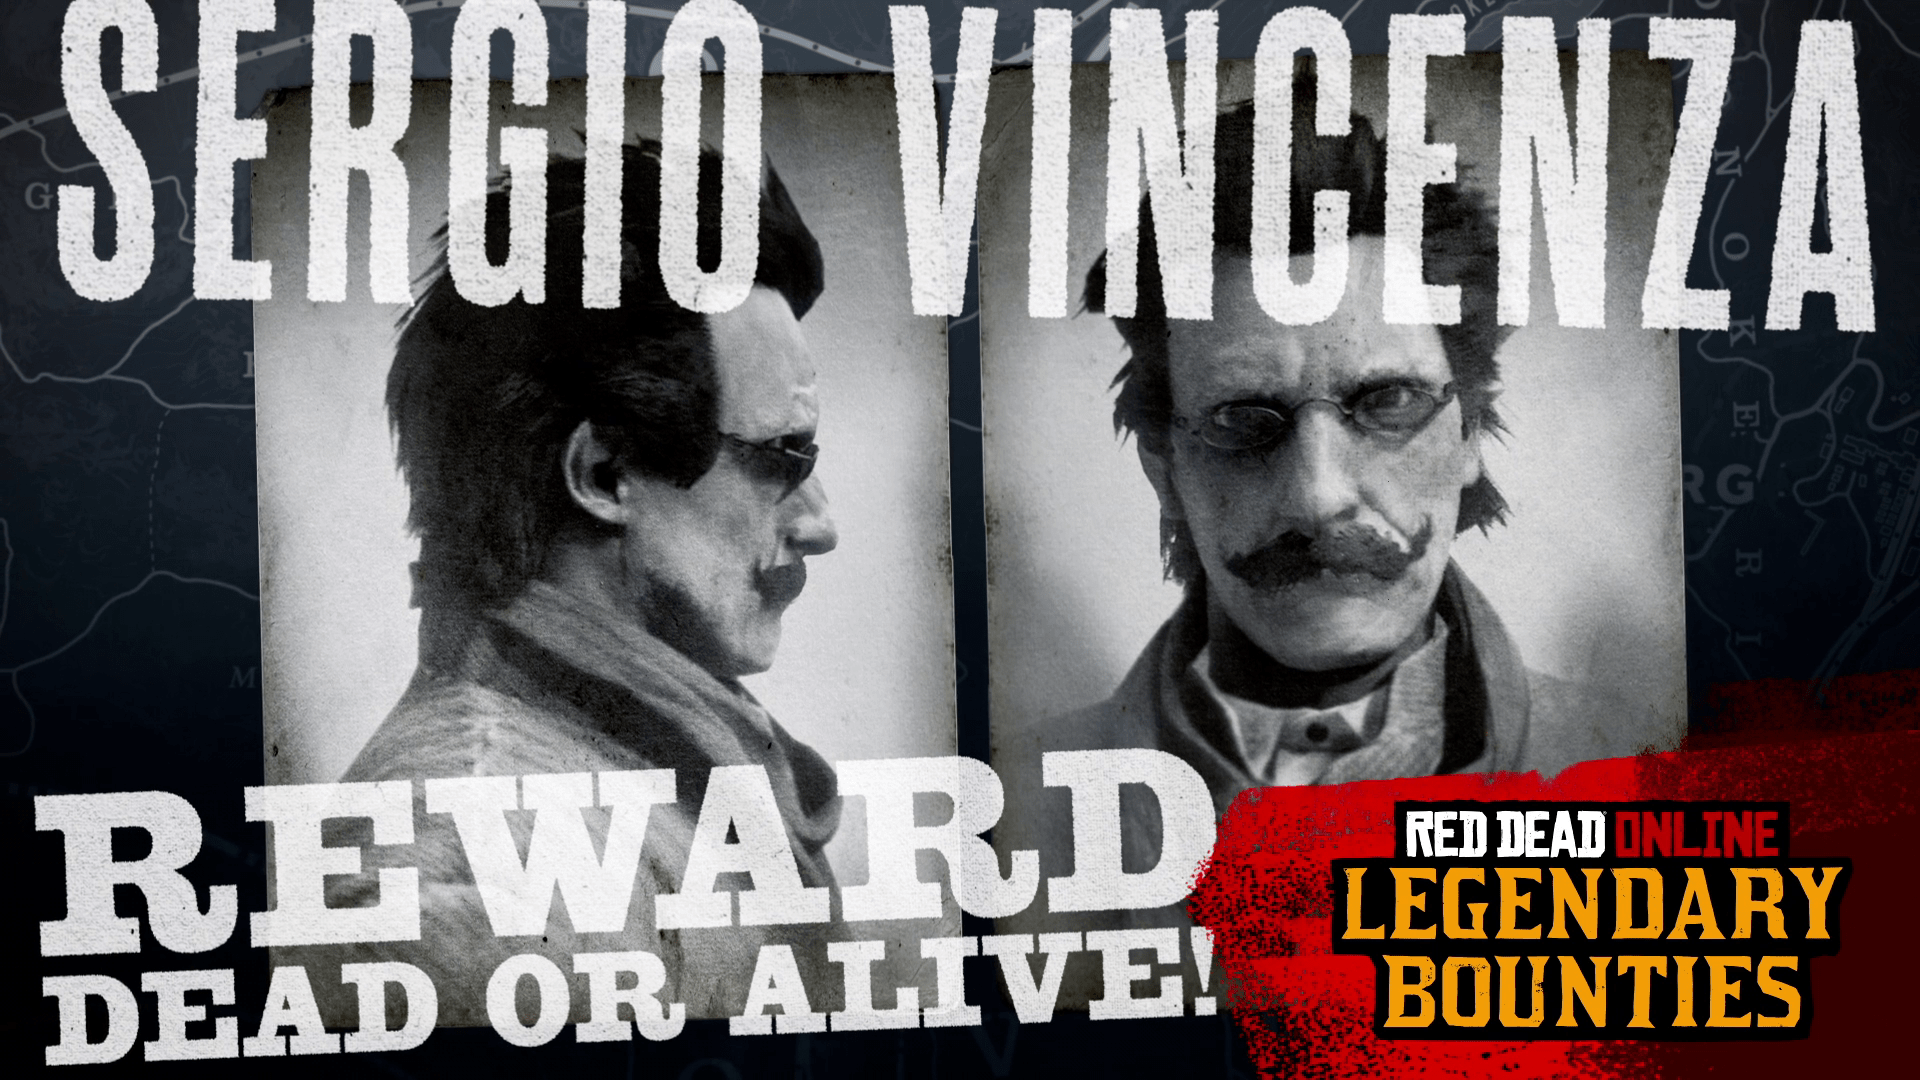 "Red Dead Online: New Legendary Bounty ""Sergio Vincenza"" & more"